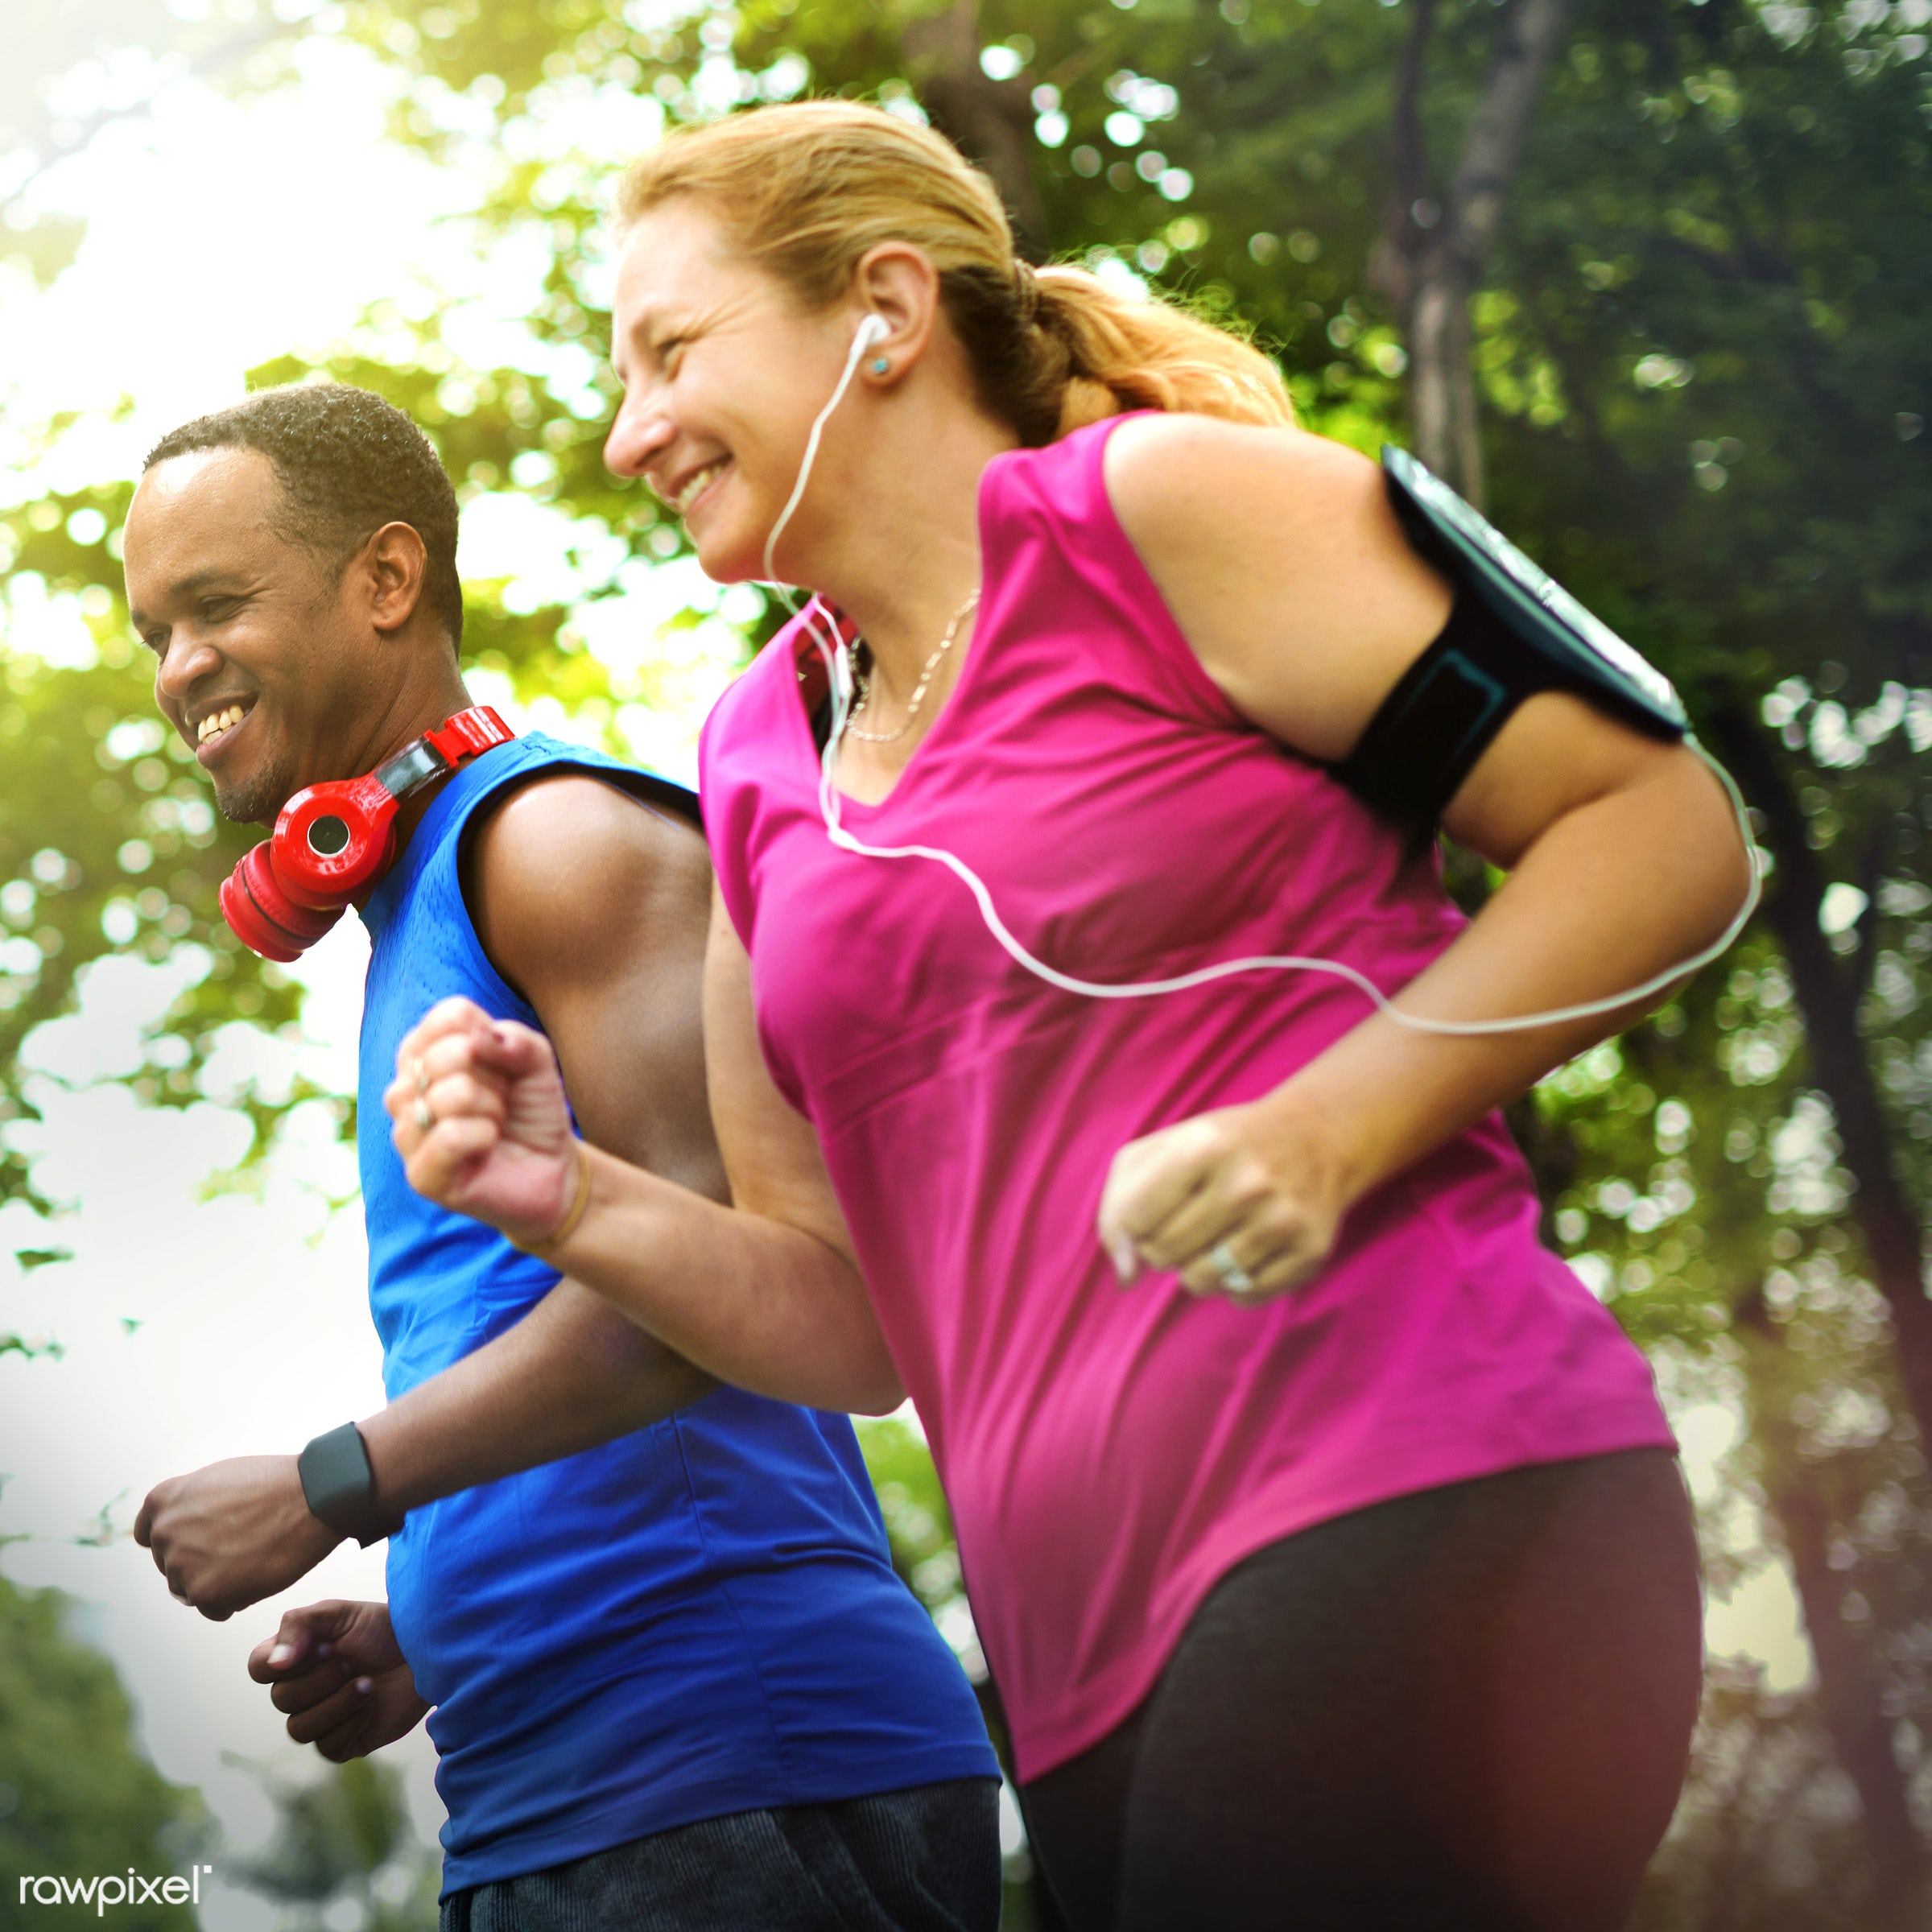 activity, athletic, body, body care, cardio, choice, communication, connection, devices, diet, digital devices, electronics...